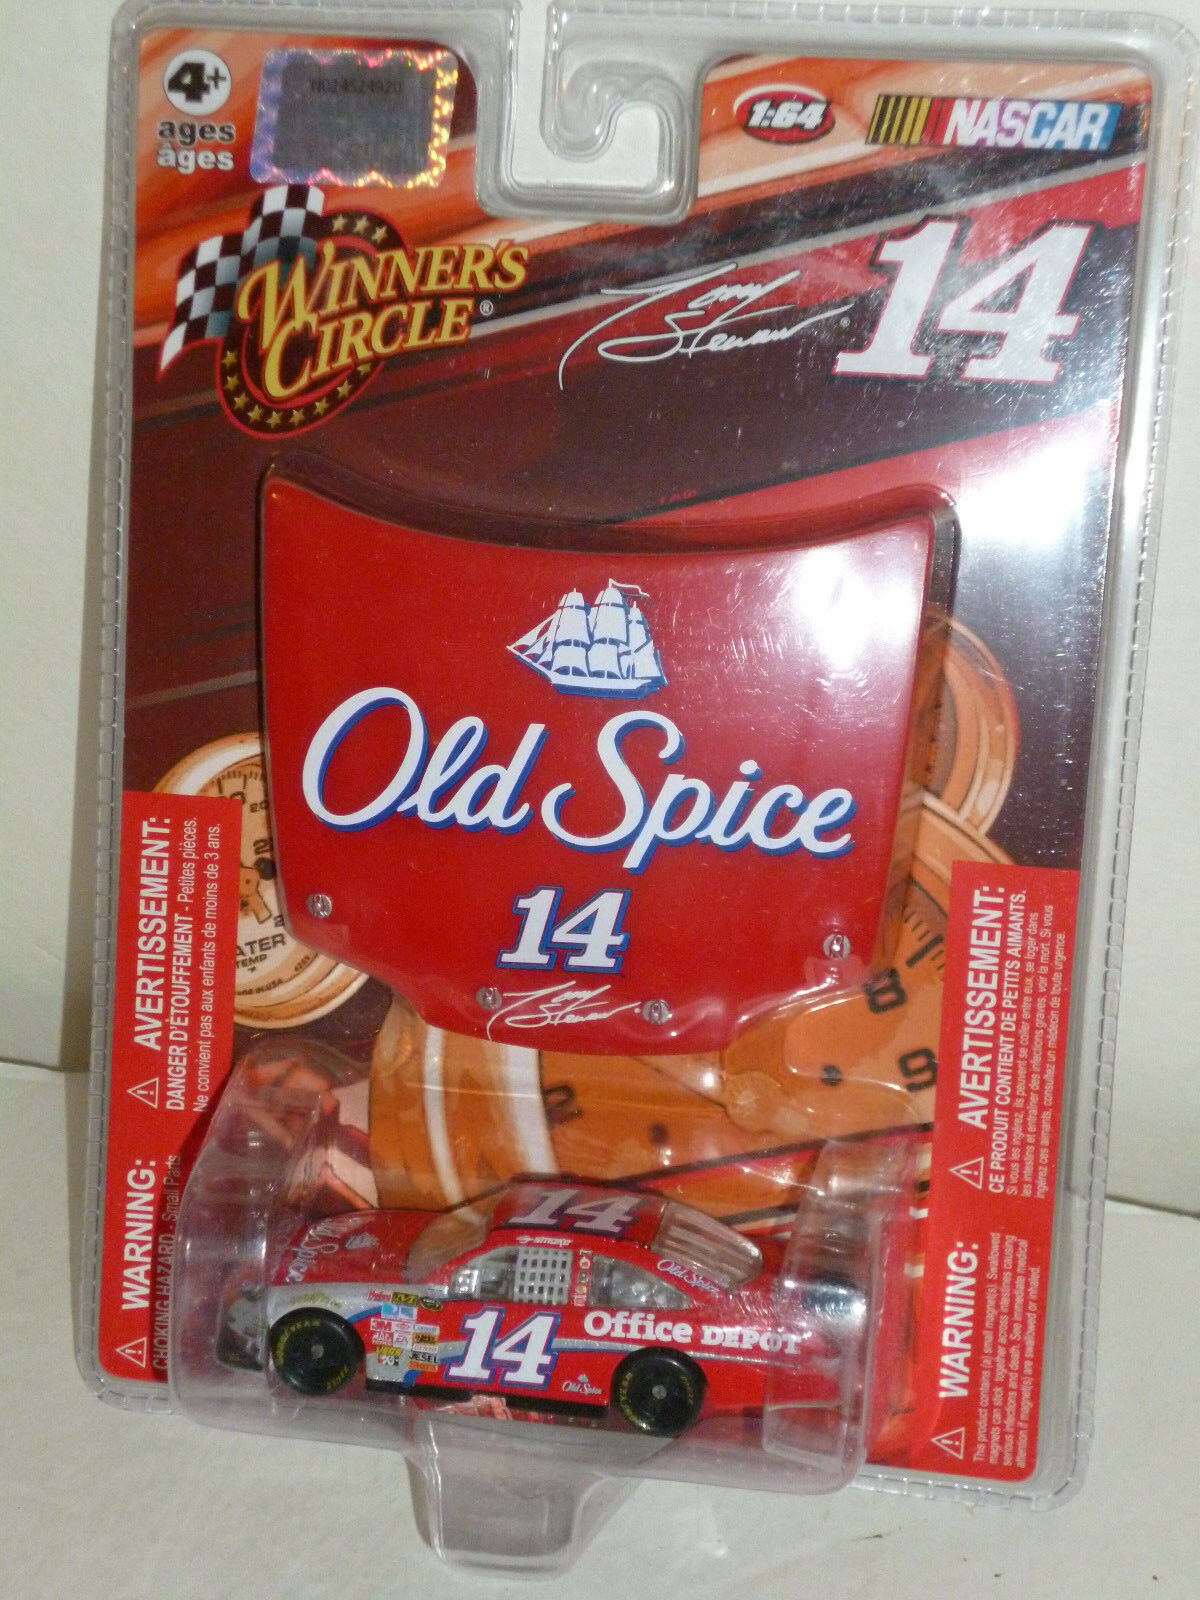 TONY STEWART OLD SPICE COT CHEVY 2009 HOOD SERIES WINNERS CIRCLE 1 64